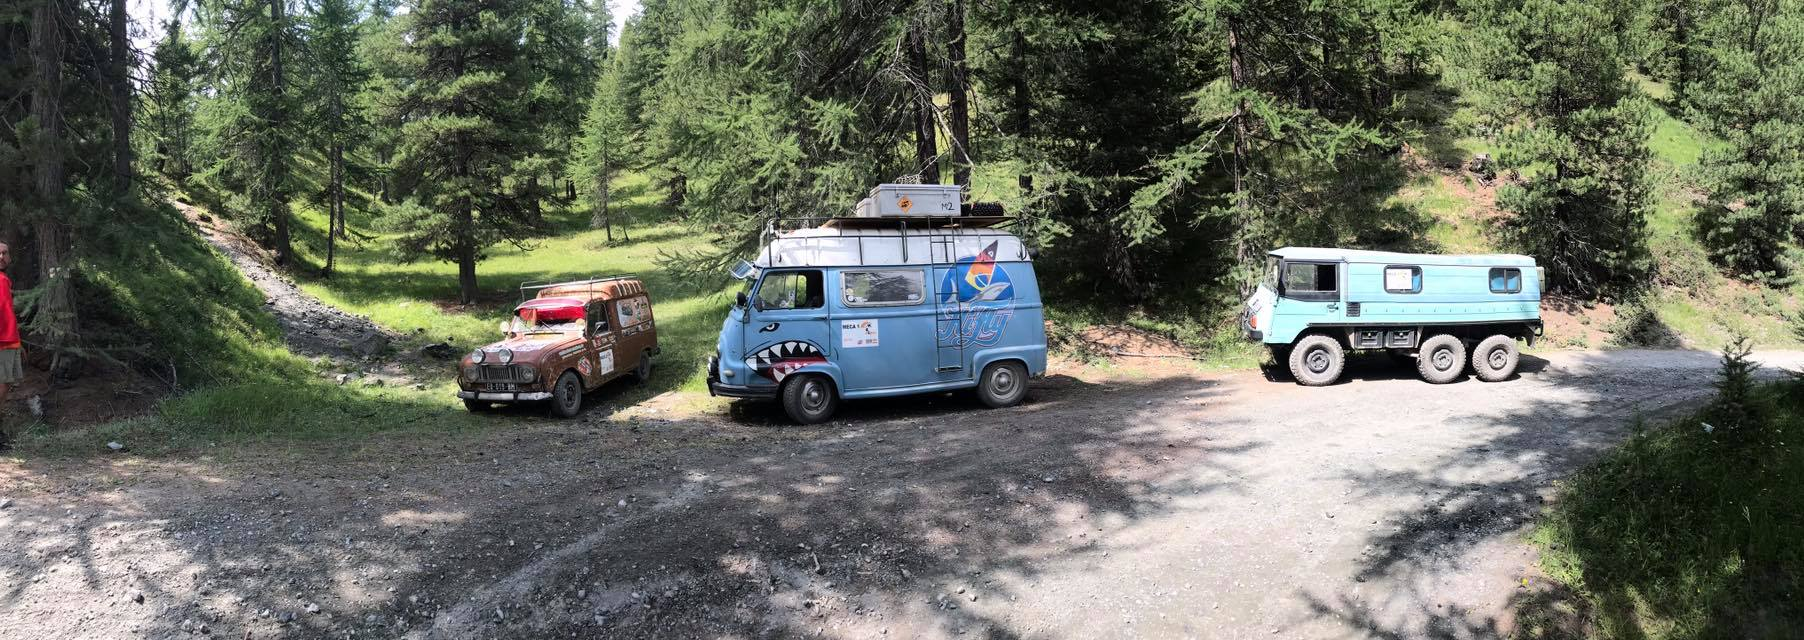 Renault estafette 4alpes 022